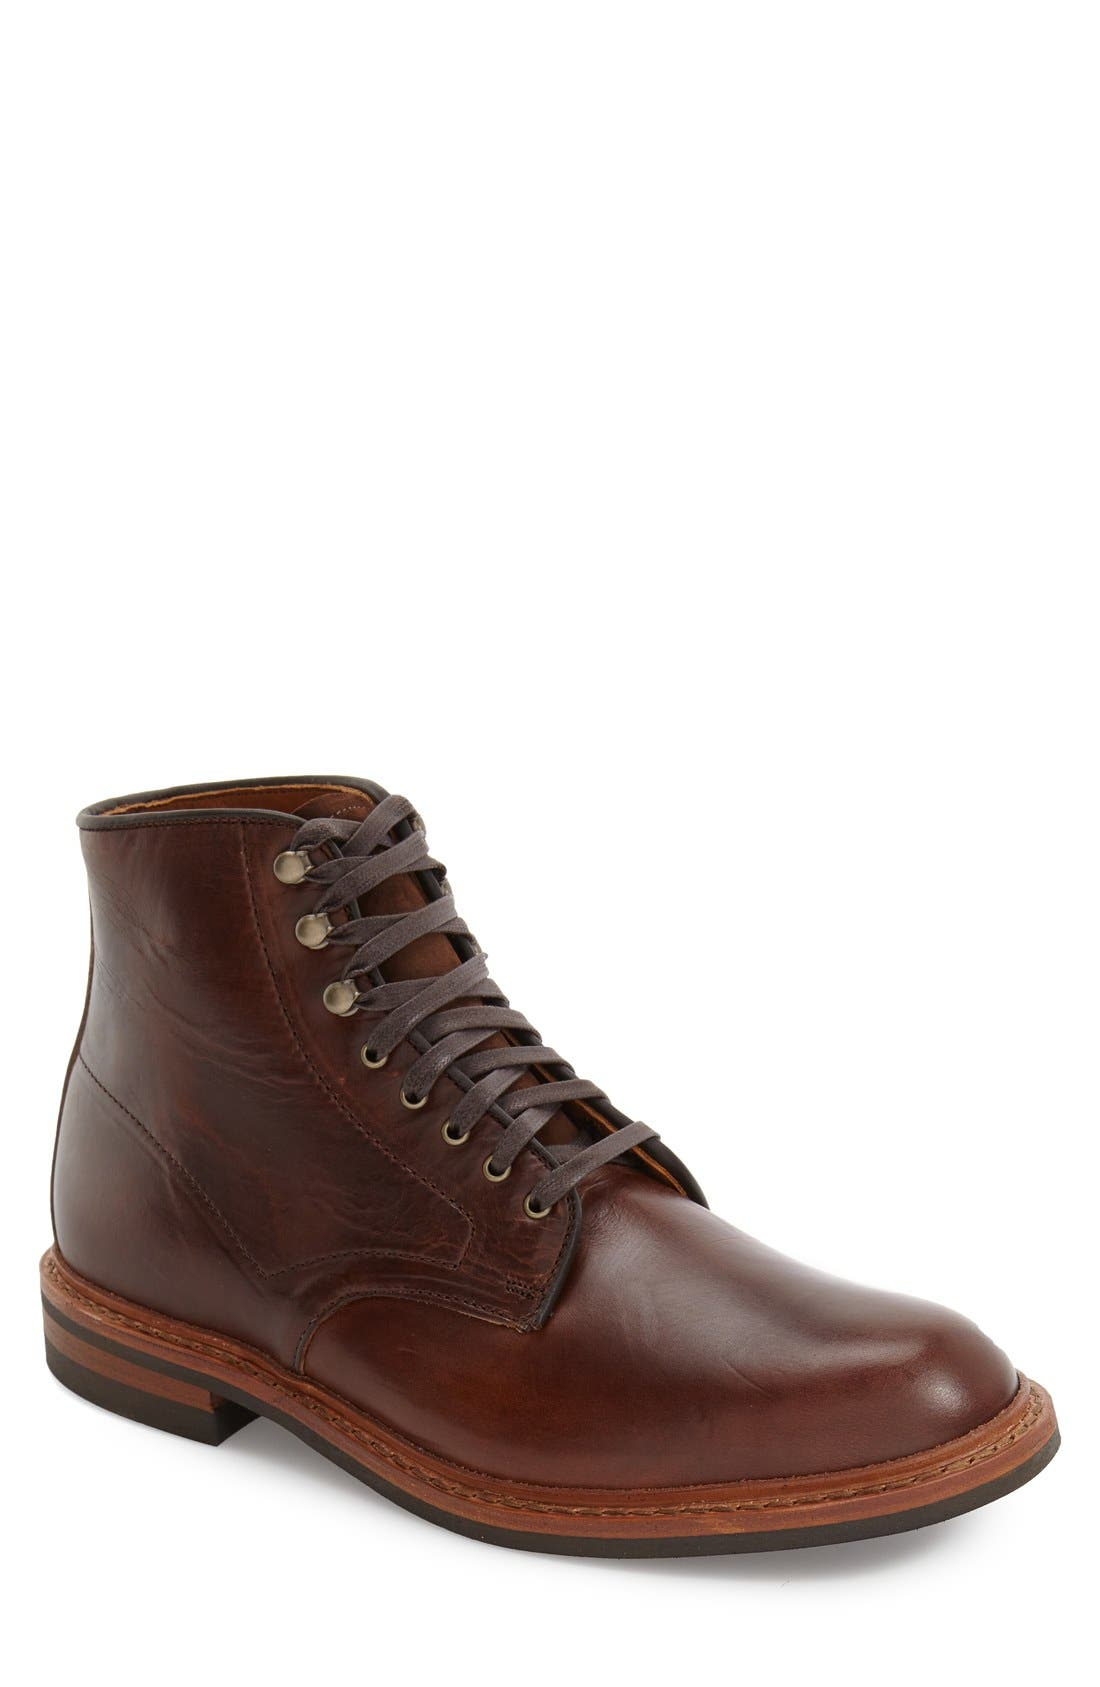 'Higgins Mill' Plain Toe Boot,                         Main,                         color, BROWN LEATHER